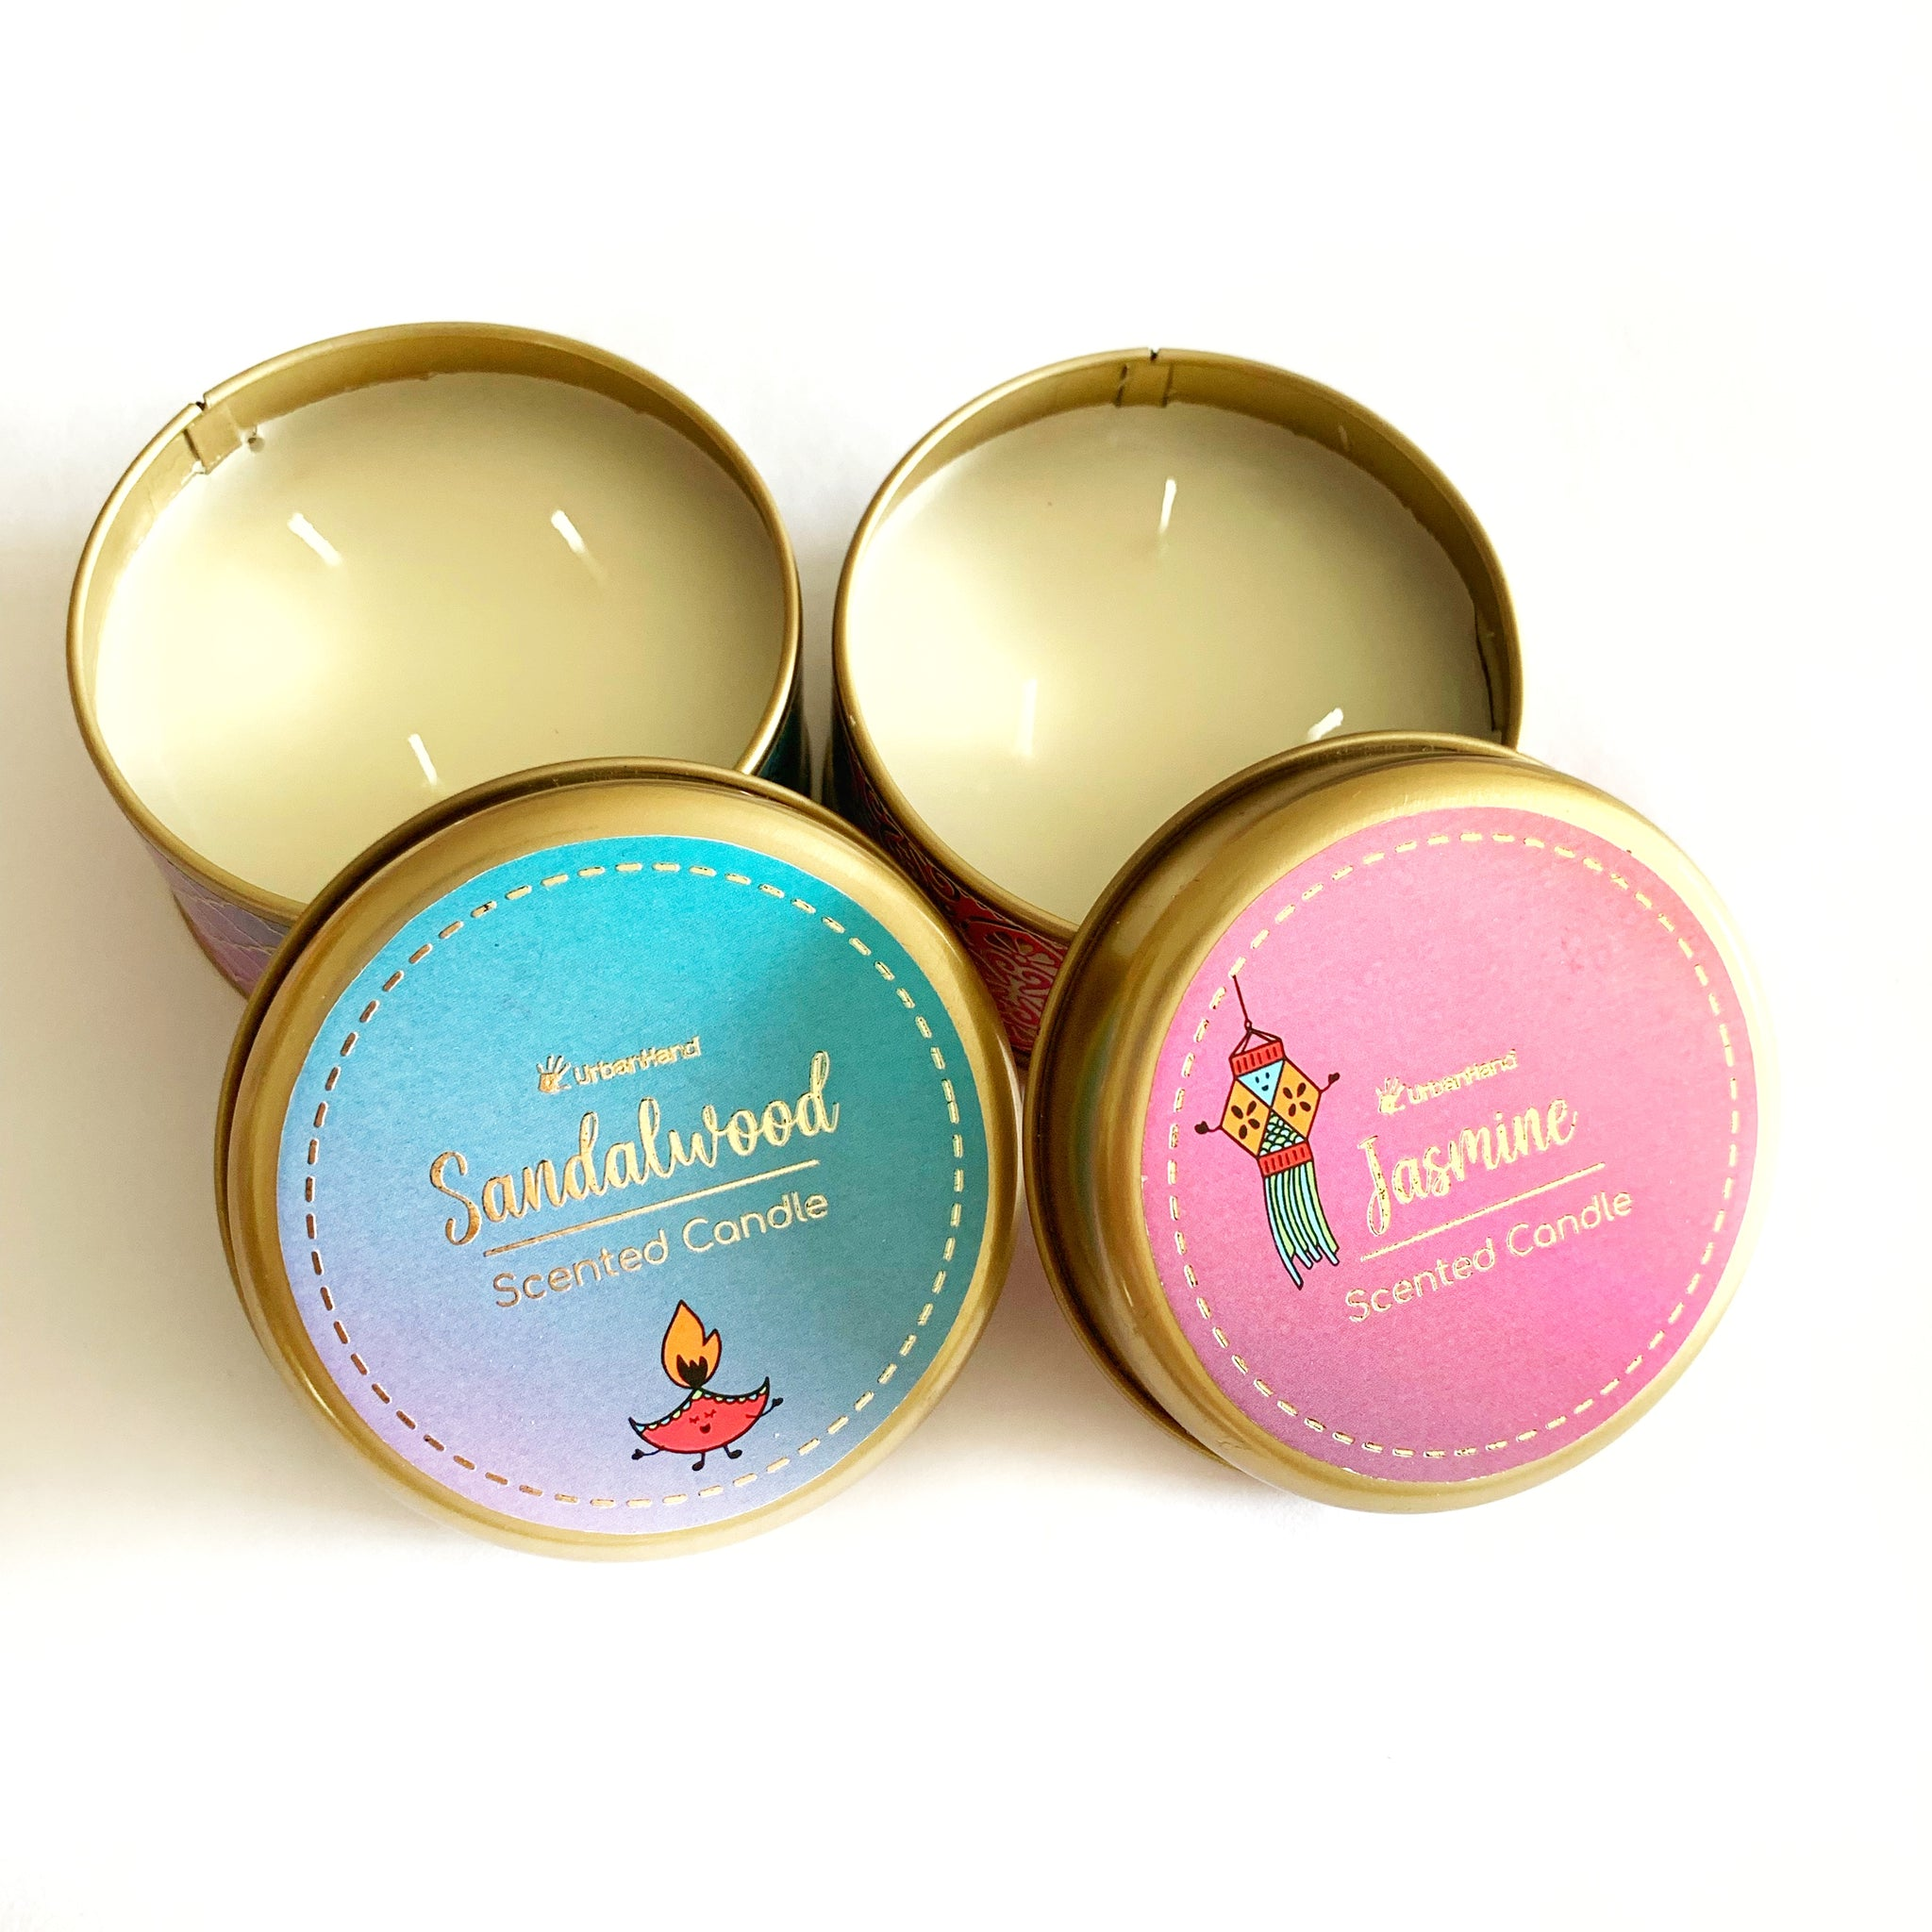 Jasmine & Sandalwood - Diwali Candles Set of 2